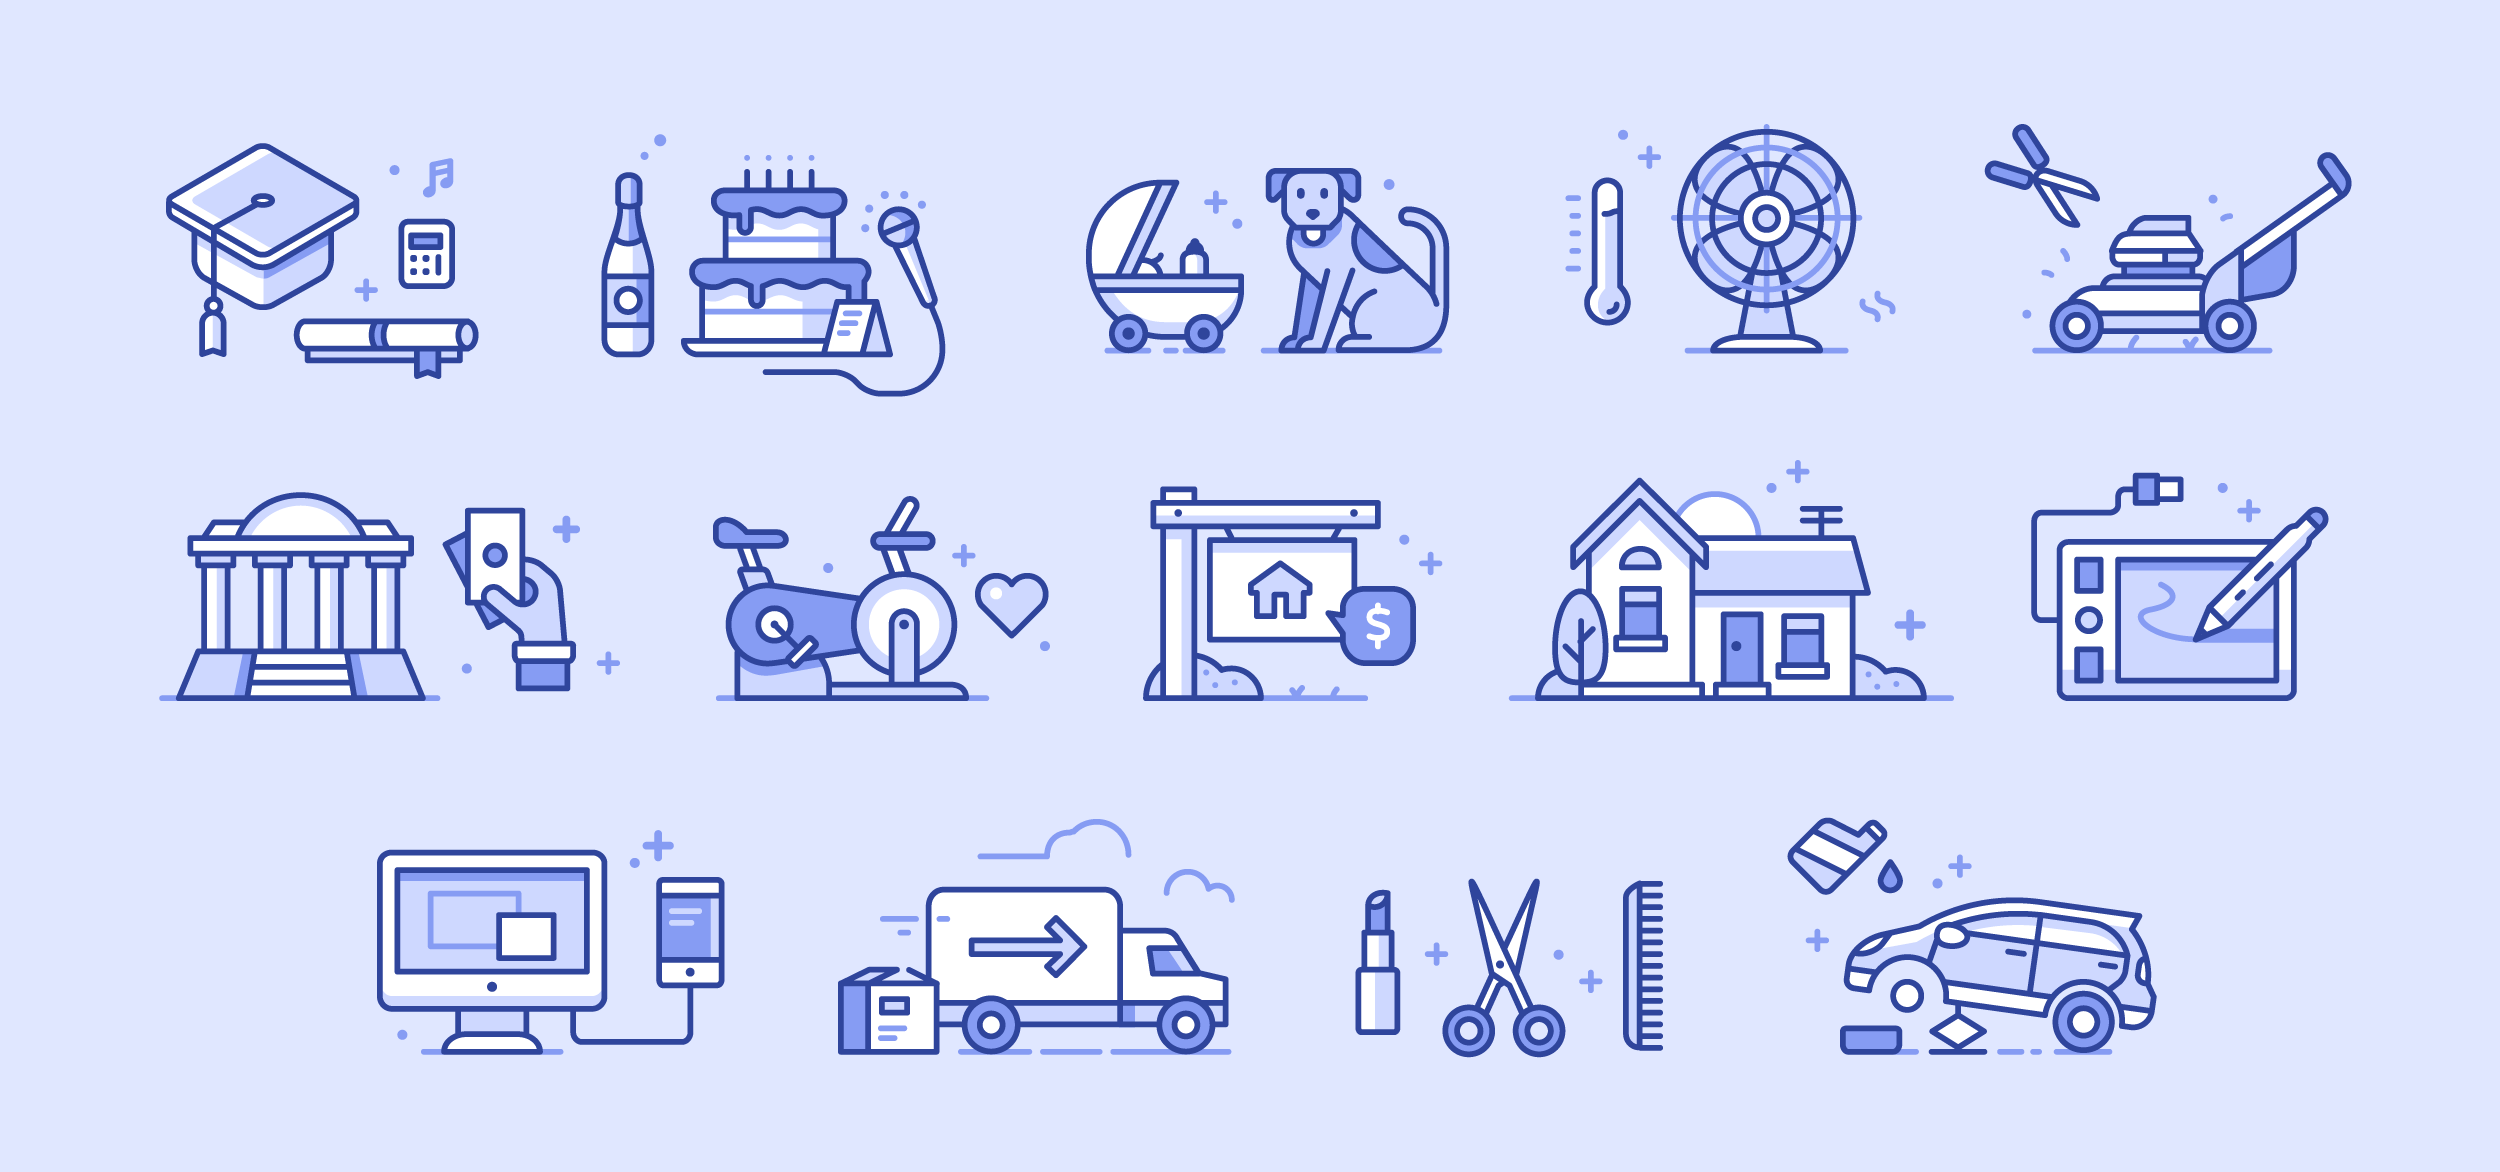 Illustrated Service Icon set for Raly - Design and Illustration by Matt Anderson